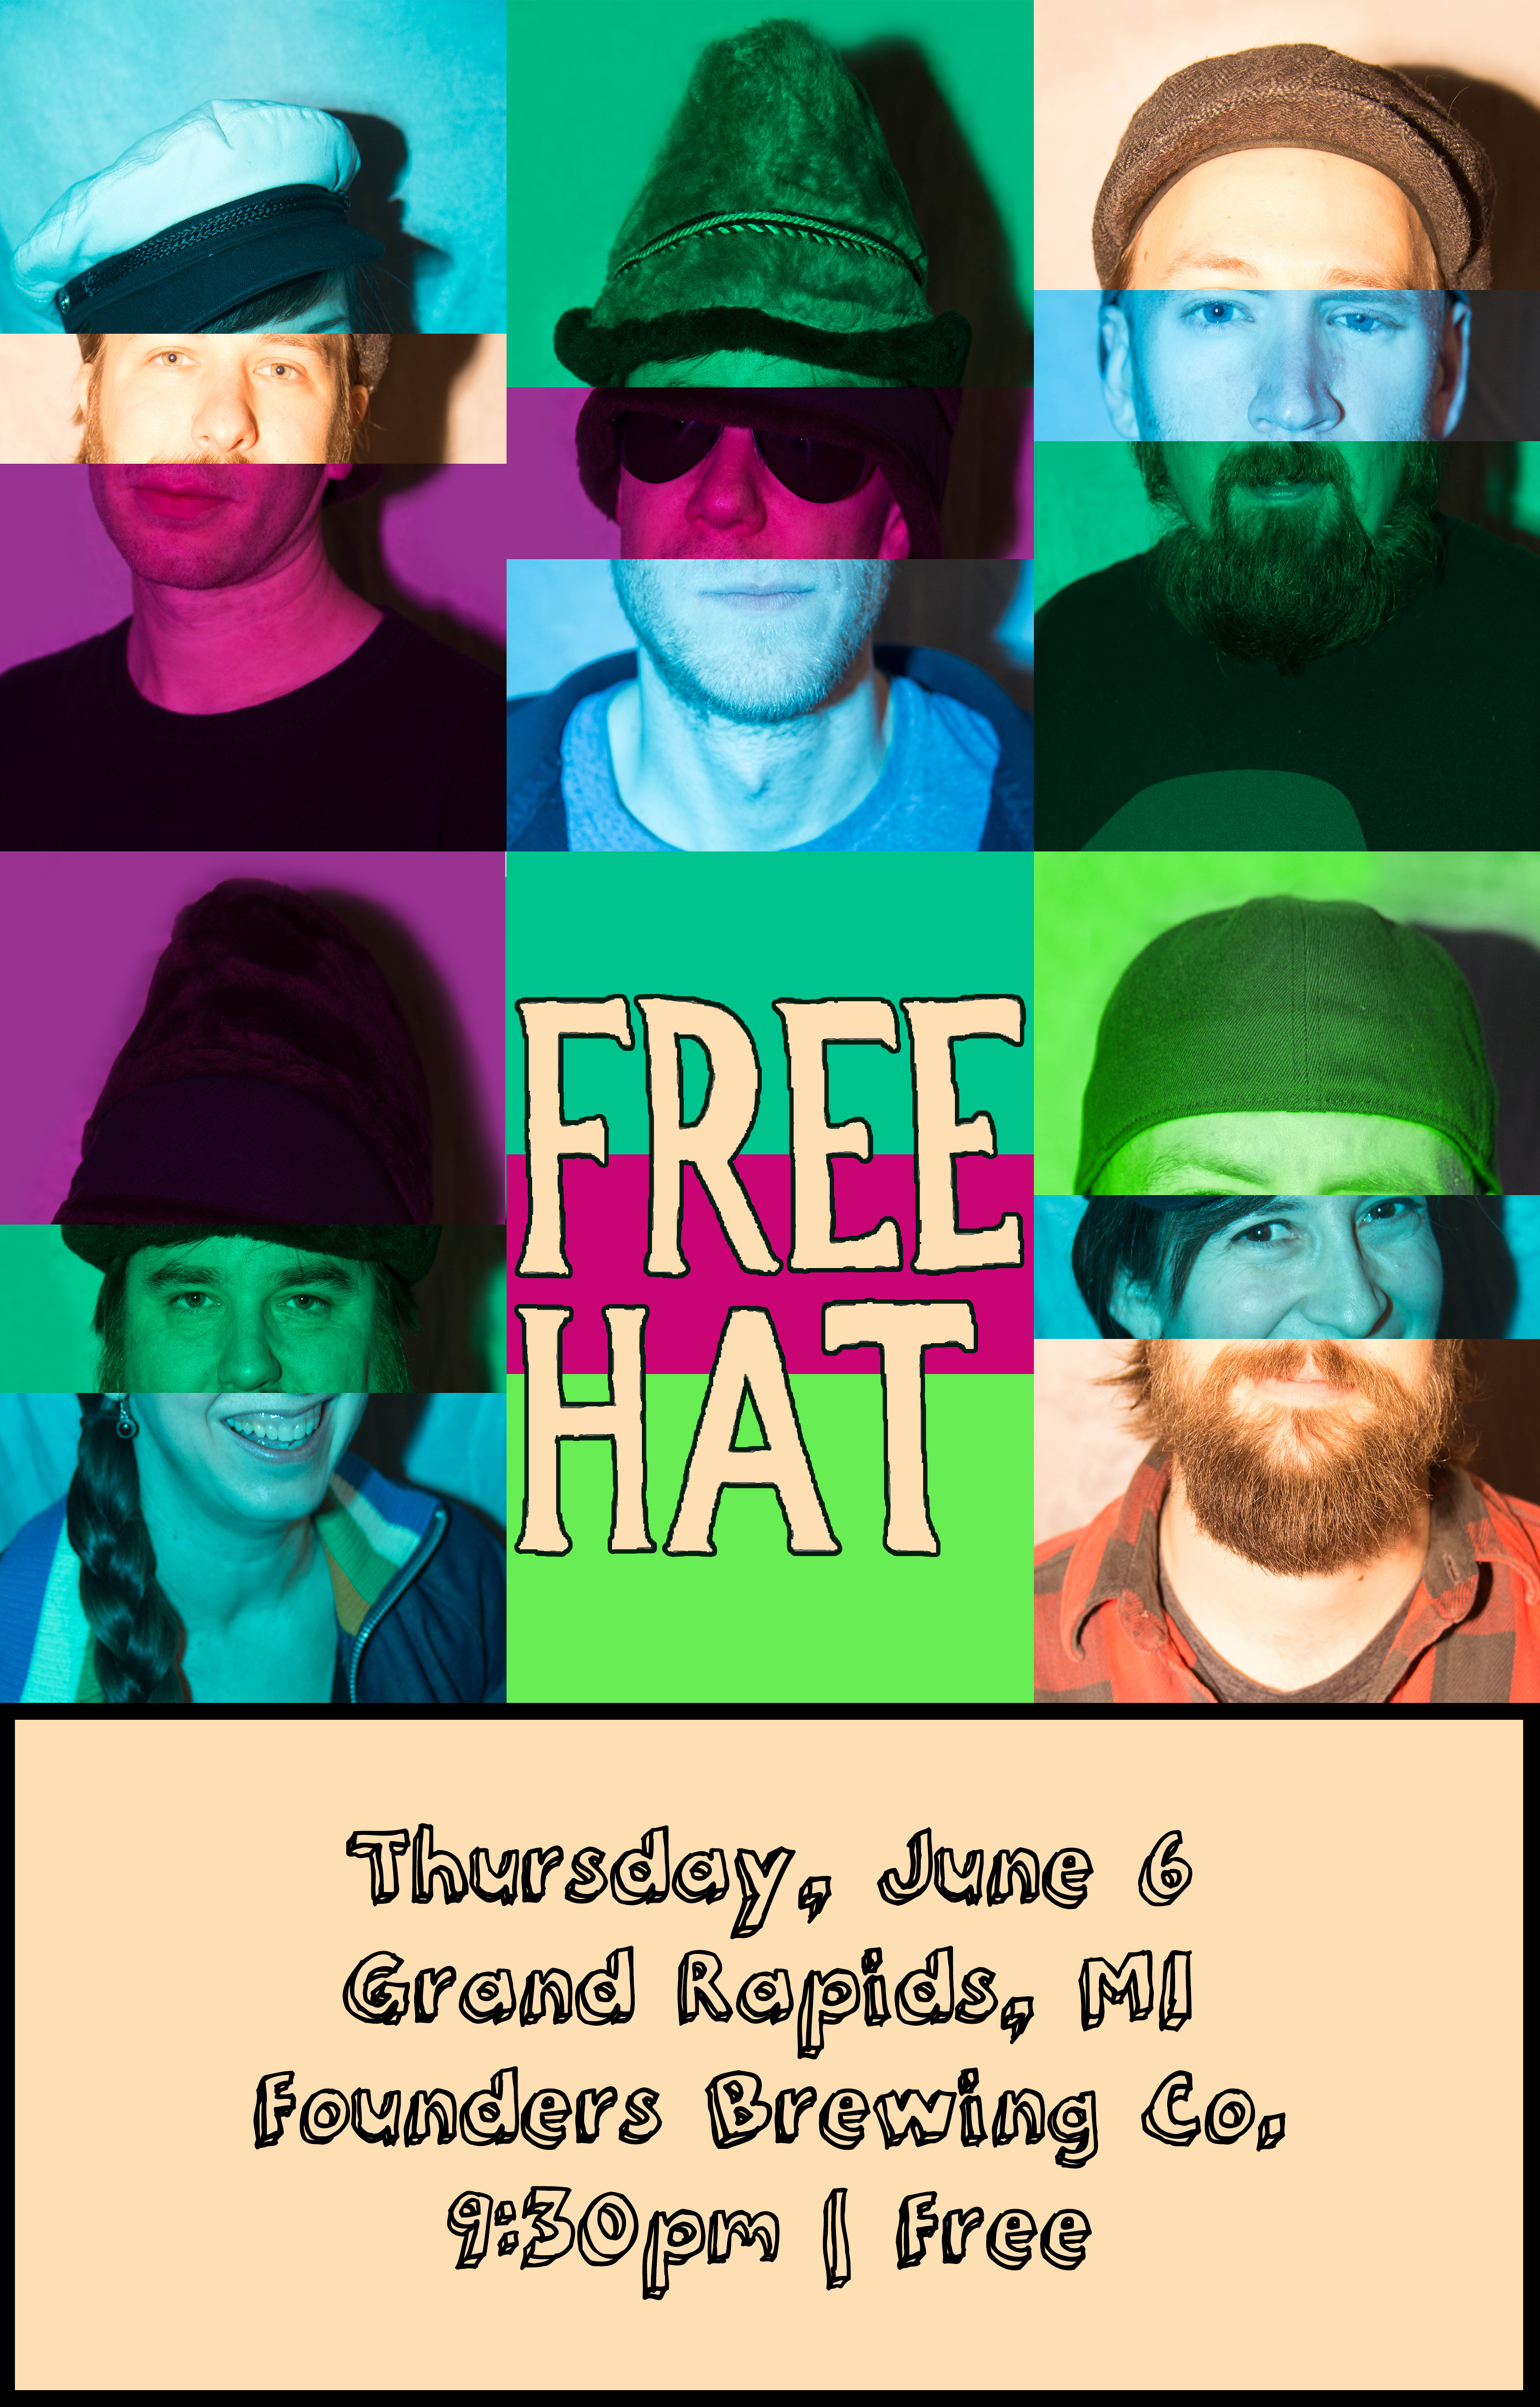 Free Hat event poster hosted by Founders Brewing Co.